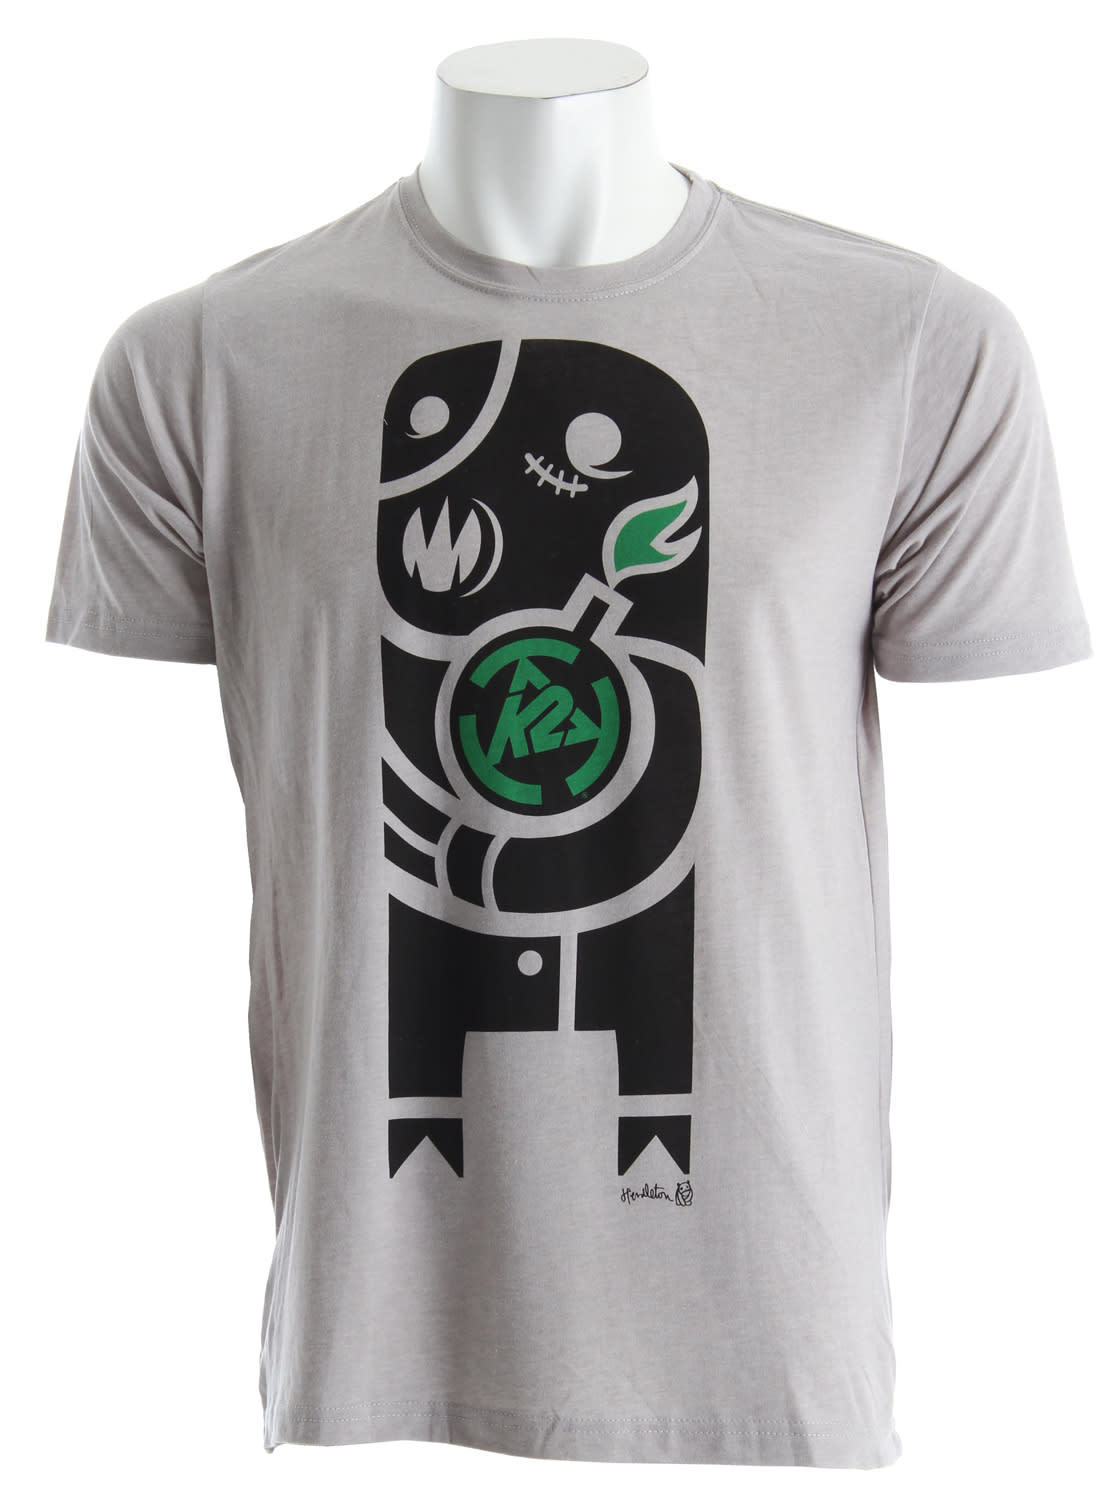 Shop for K2 Fastplant T-Shirt Light Grey - Men's